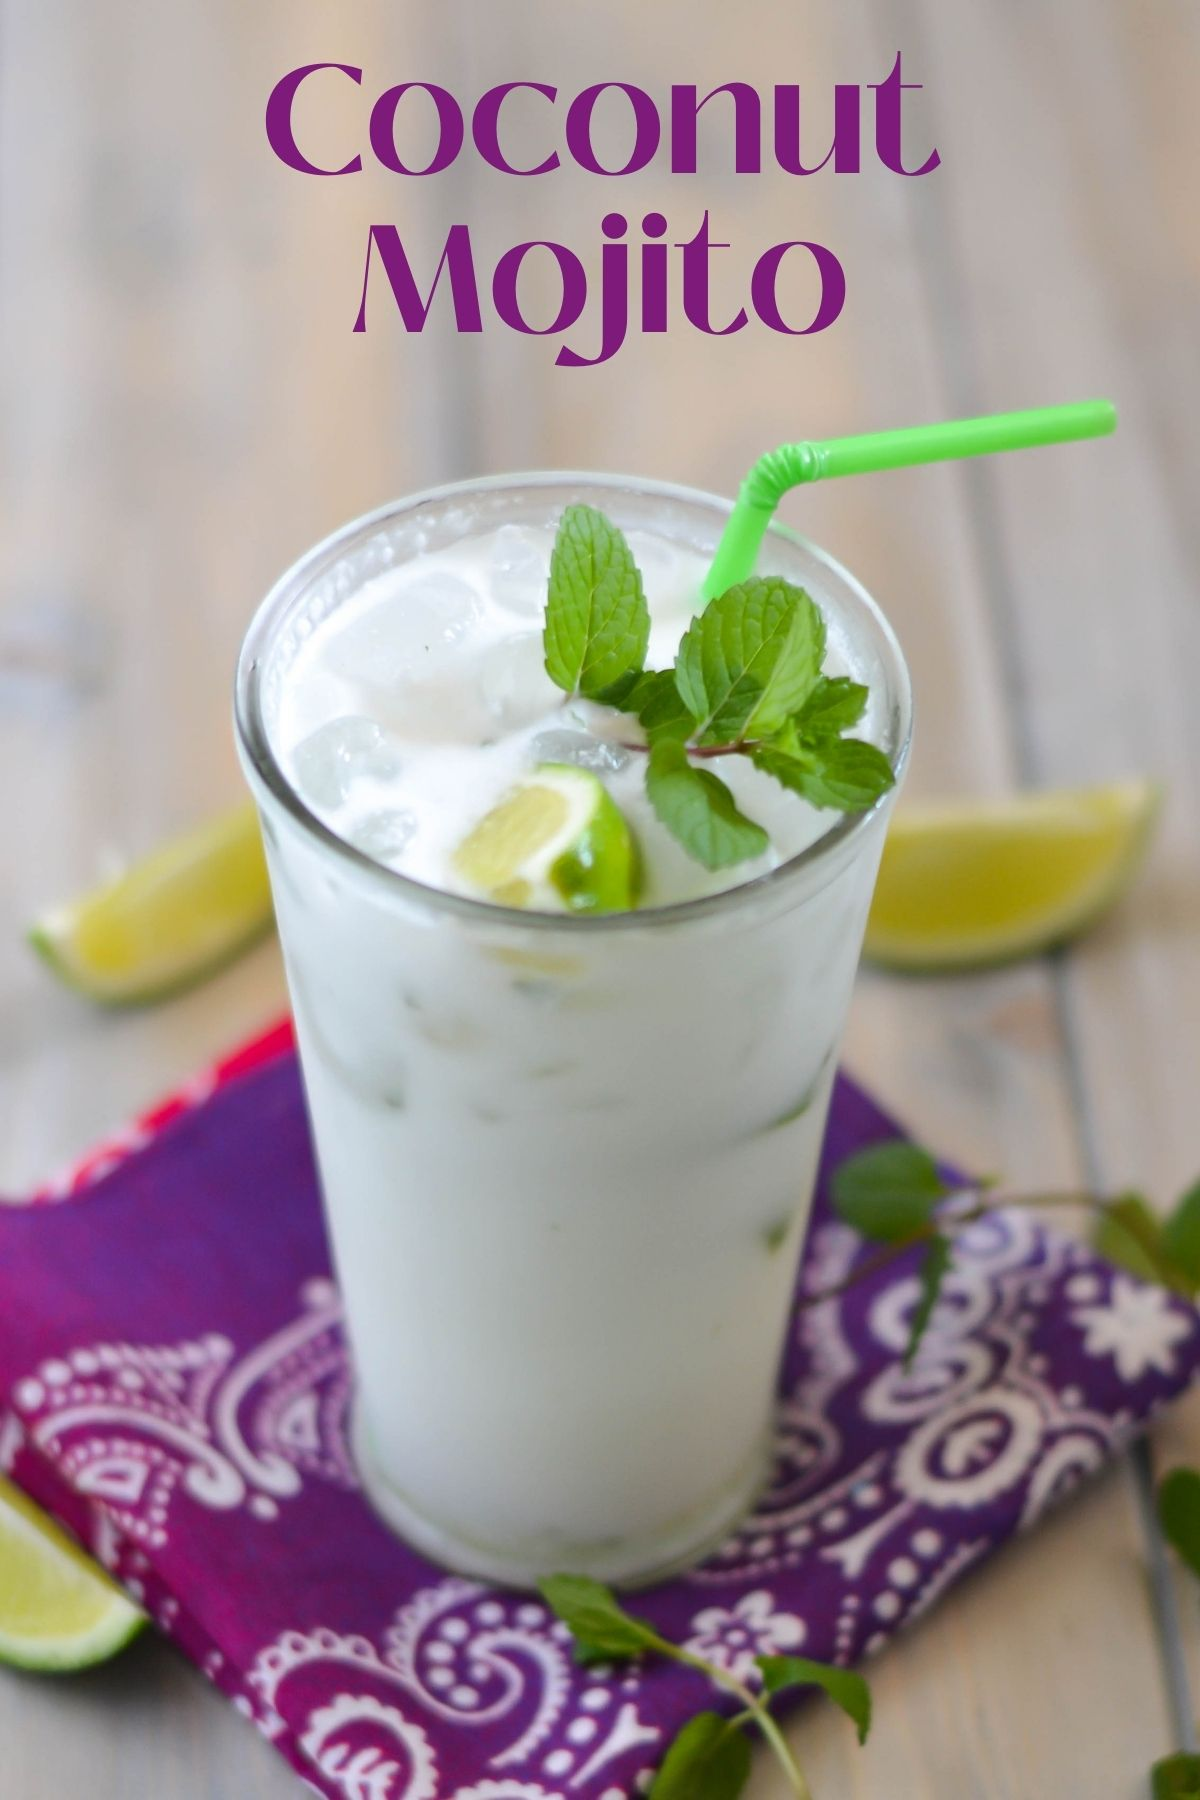 Photo of a tall glass filled with a coconut mojito garnished with lime wedge and mint.